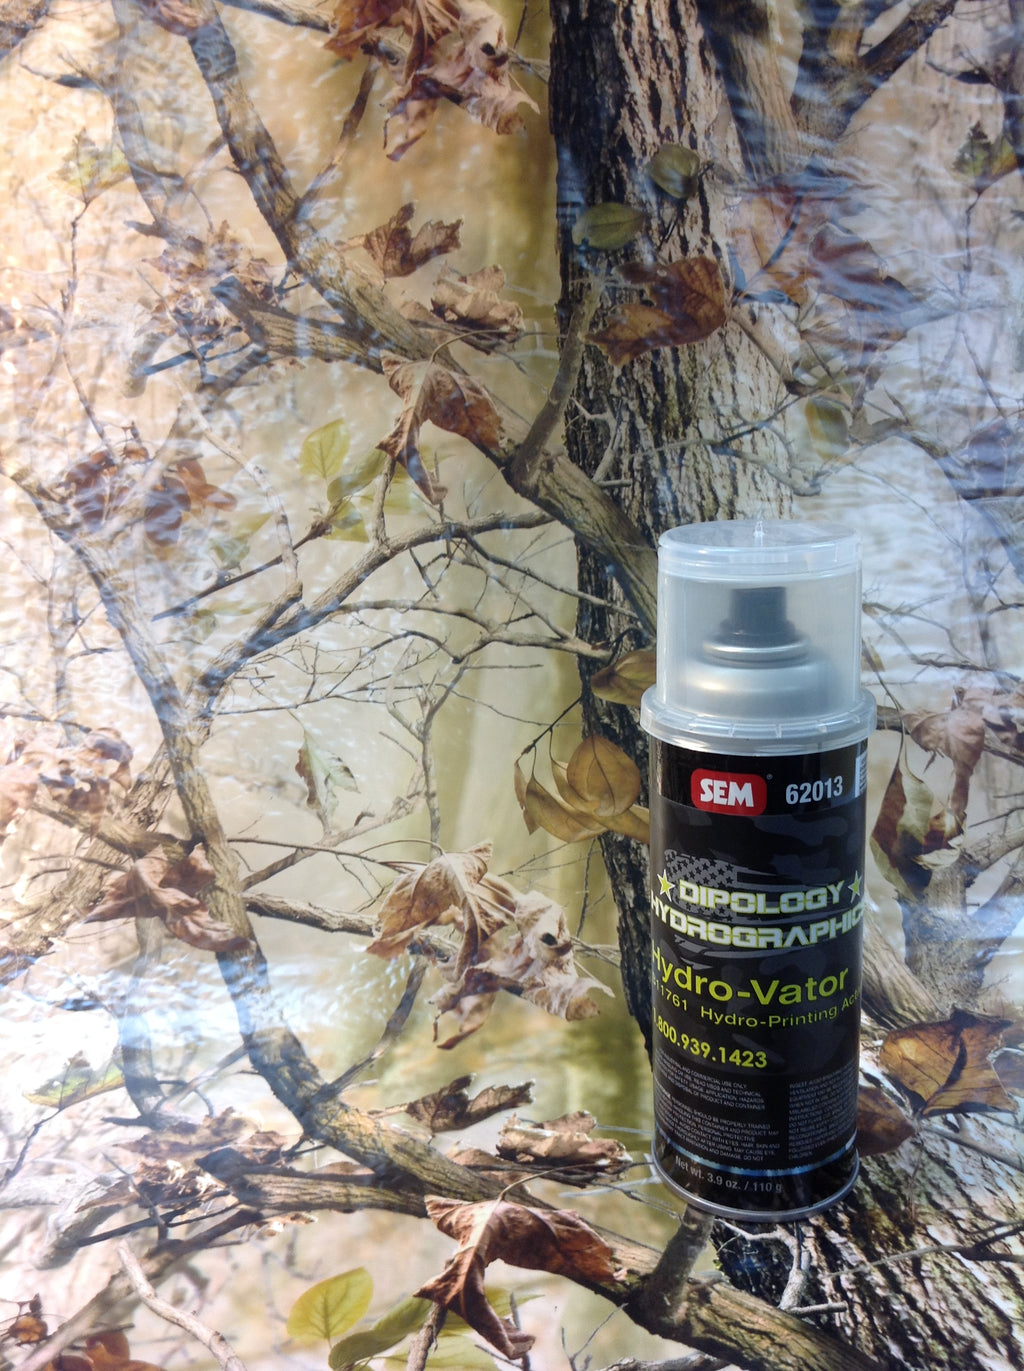 HD WOODLAND 3 Meter Pro Kit with Aerosol Activator, Hydrographics film - Dipology Hydrographics